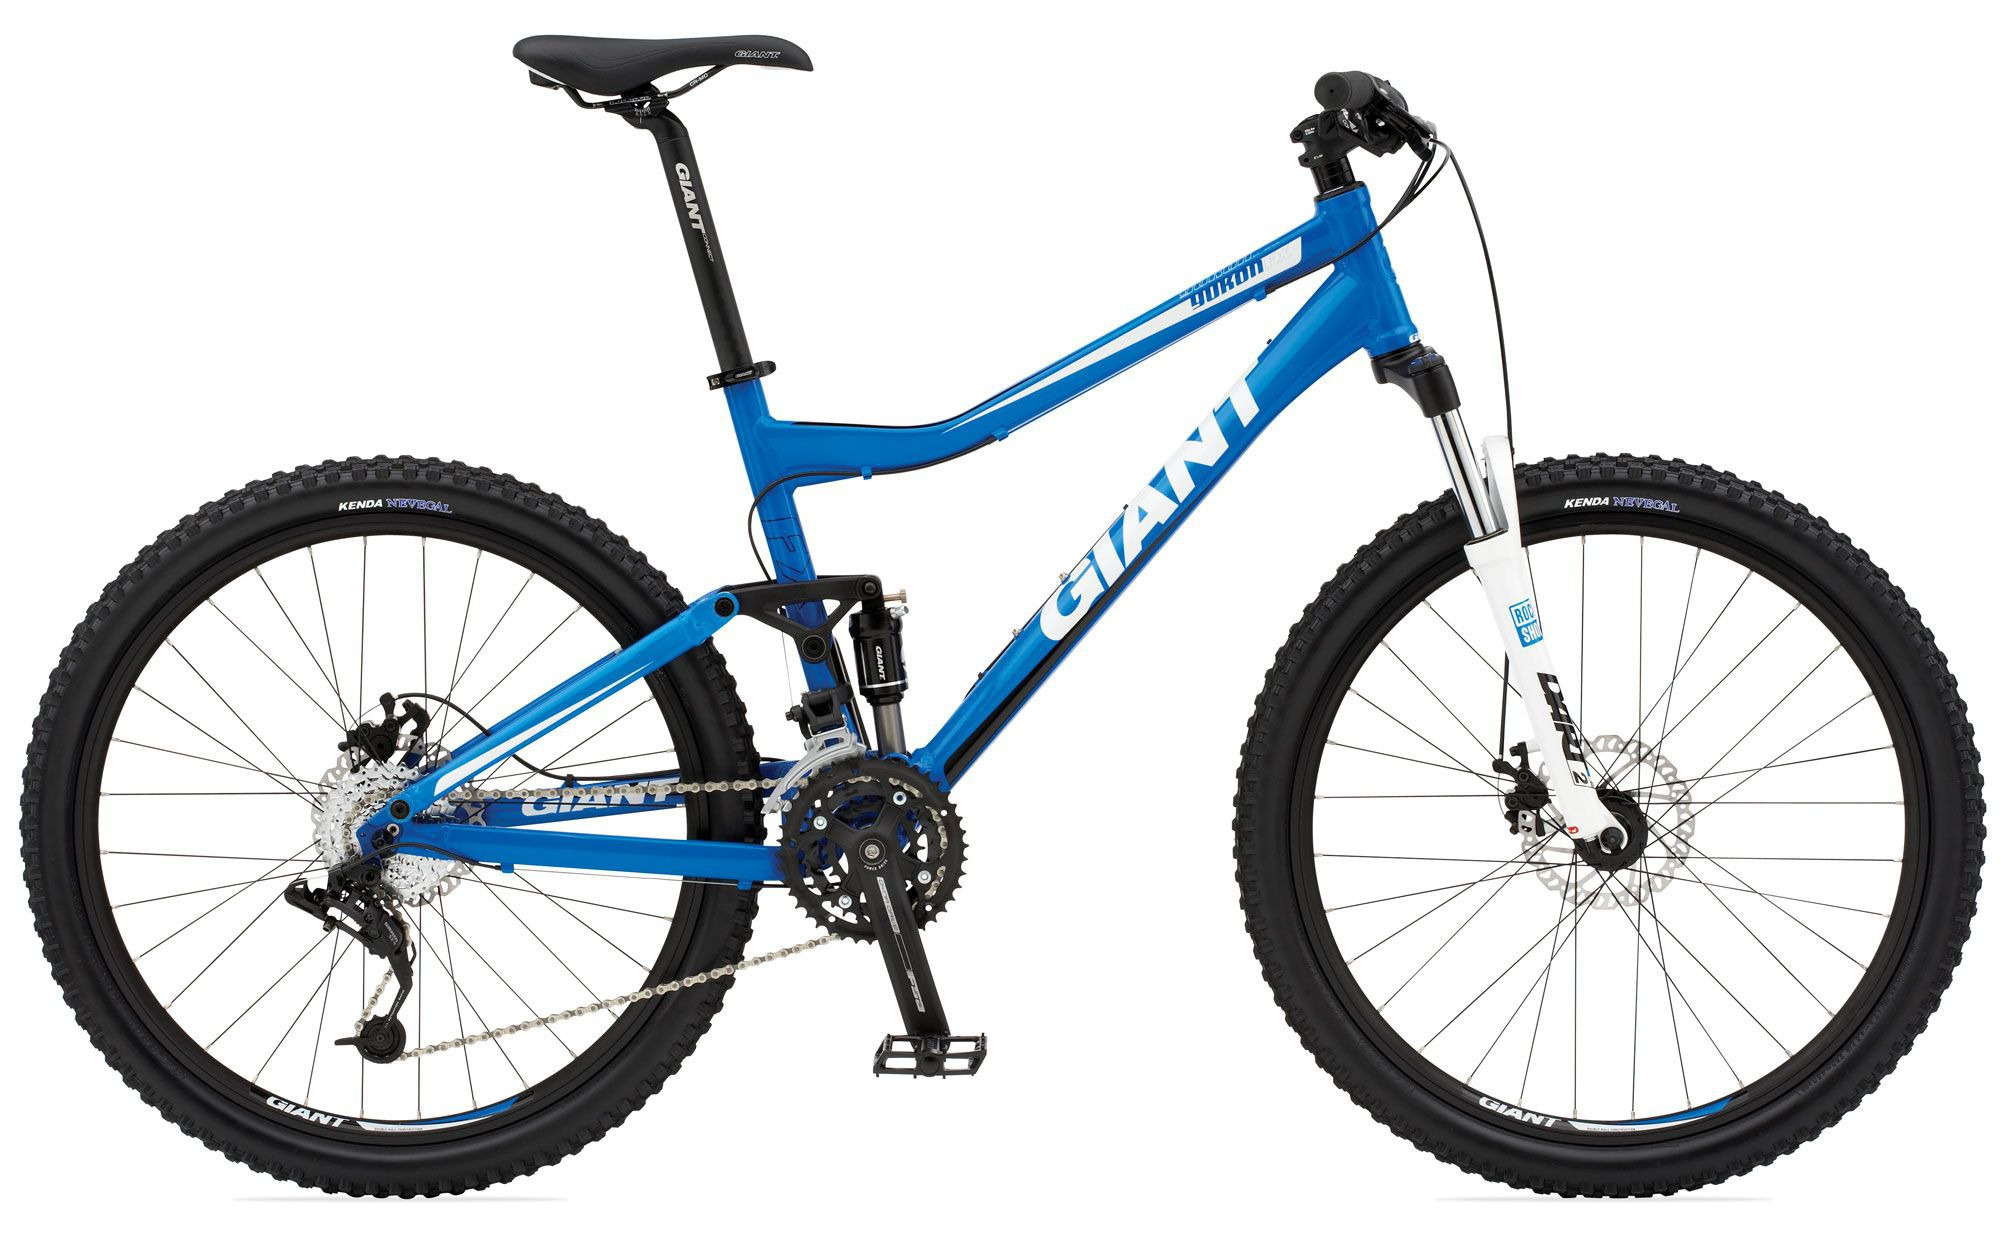 2010 Giant Yukon Fx Bicycle Details Bicyclebluebook Com